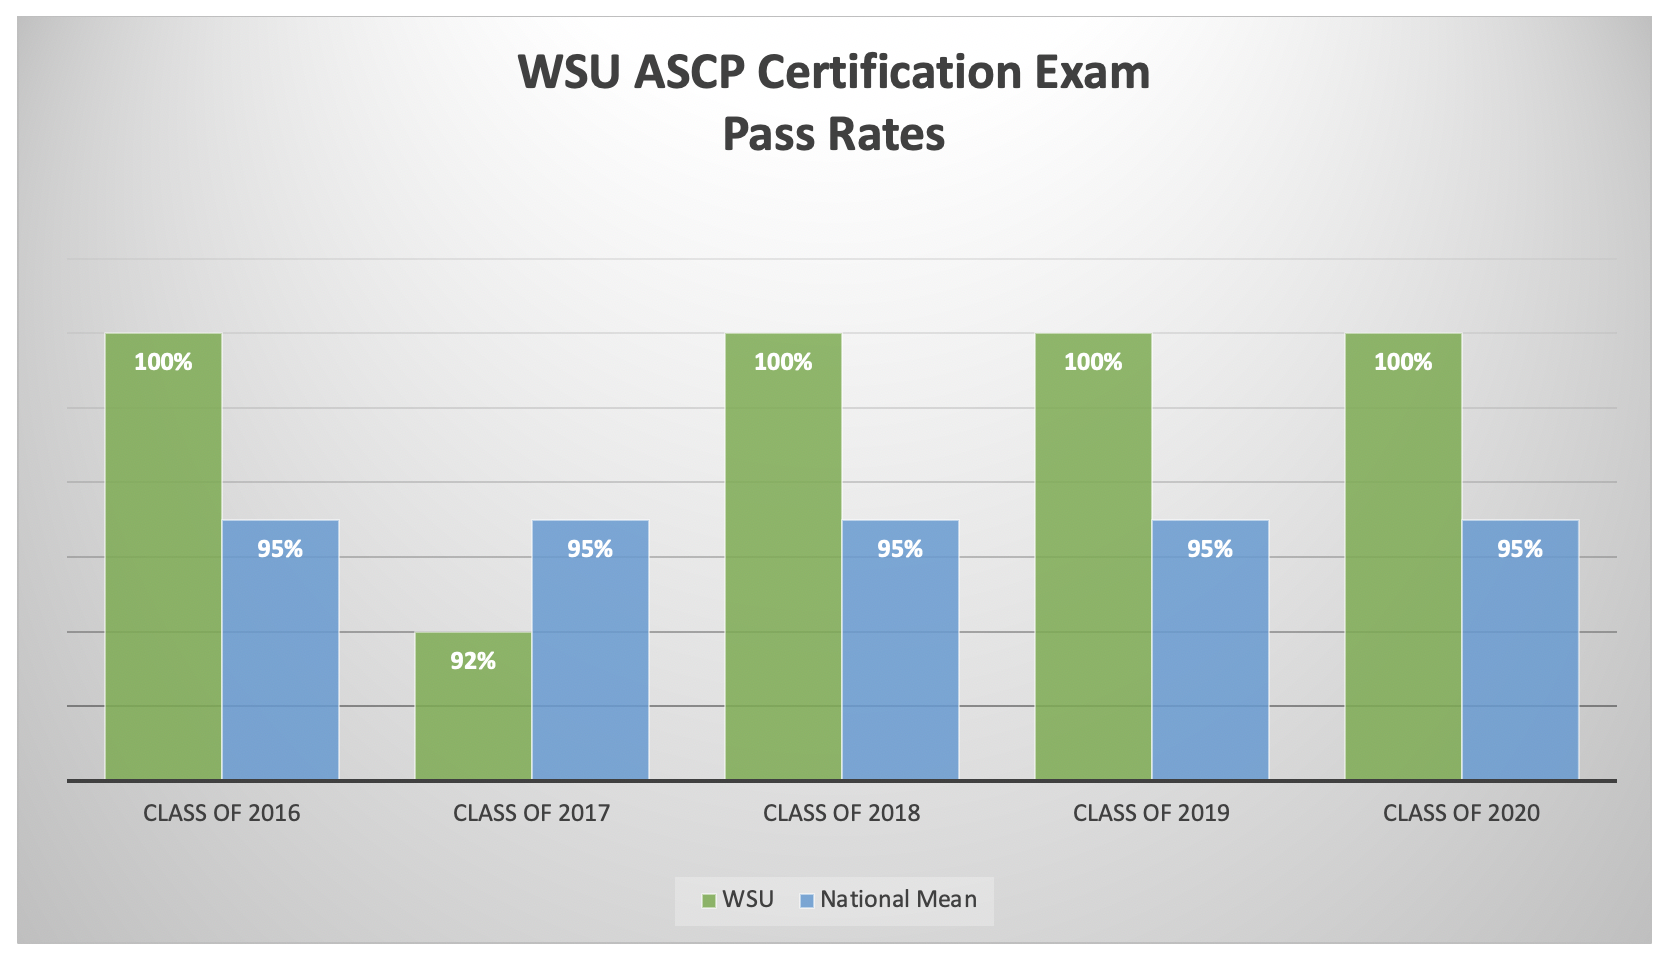 WSU Student Performance on ASCP Certification Exam Pass Rates